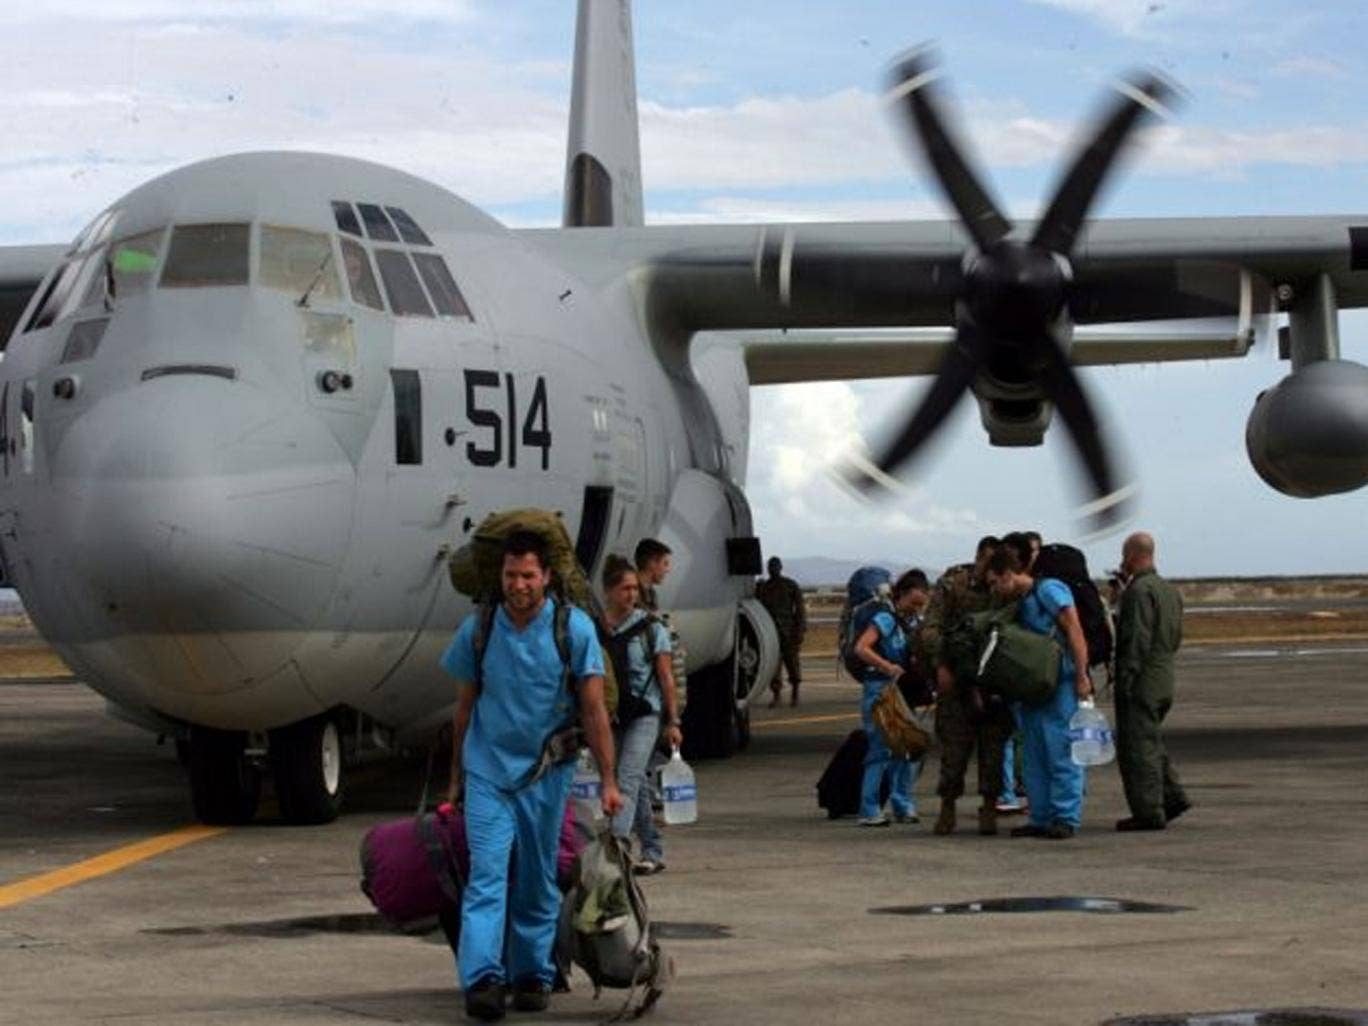 Foreign doctors on board a US C-130 plane arrive to help people affected by typhoon in Tacloban, Leyte, Philippines